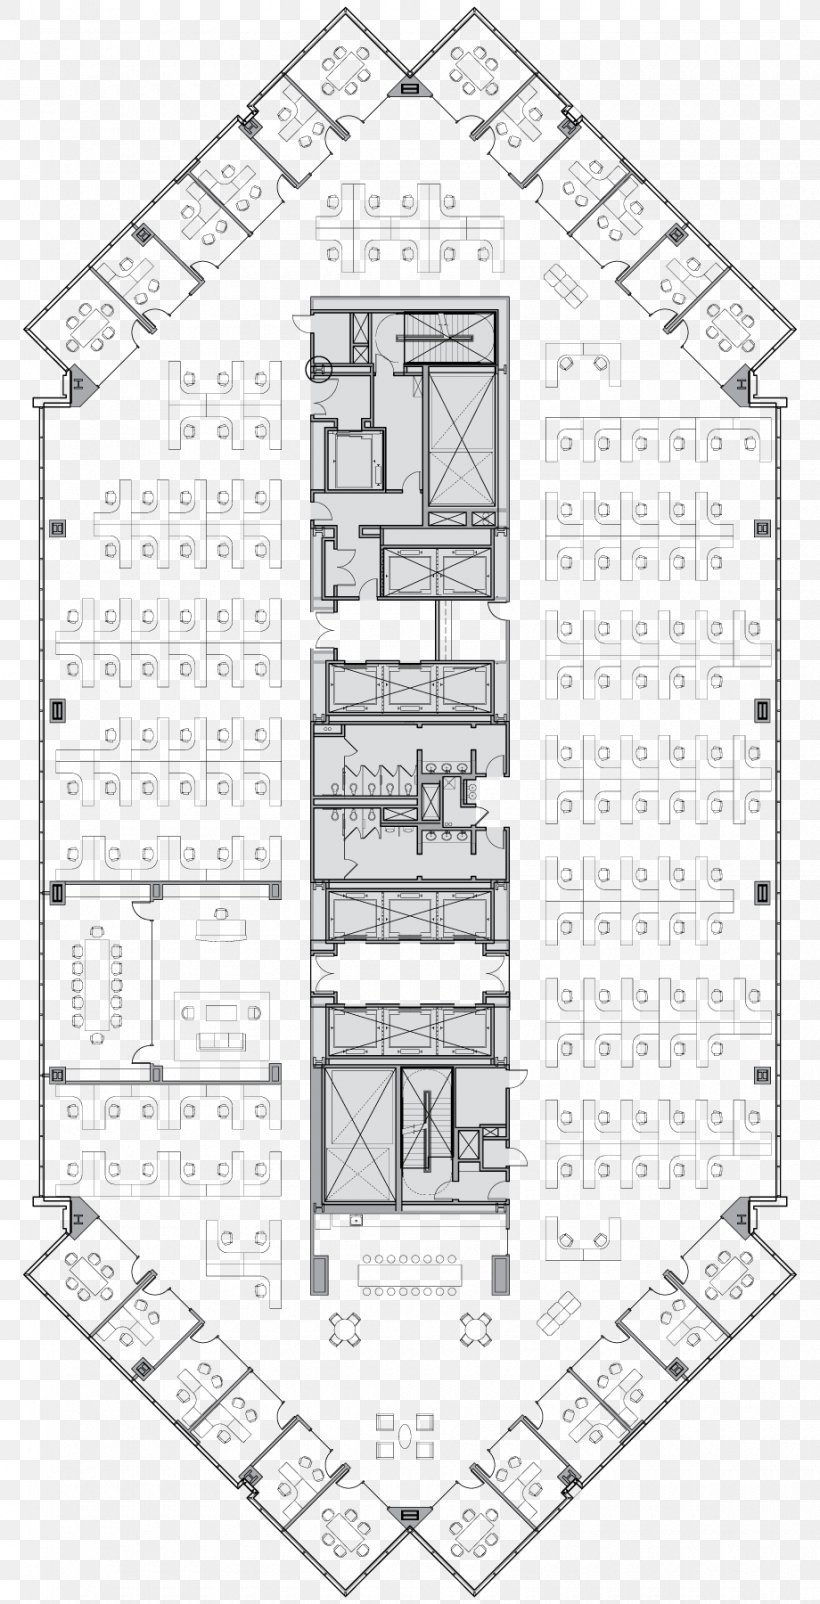 Floor Plan Architecture High-rise Building Architectural